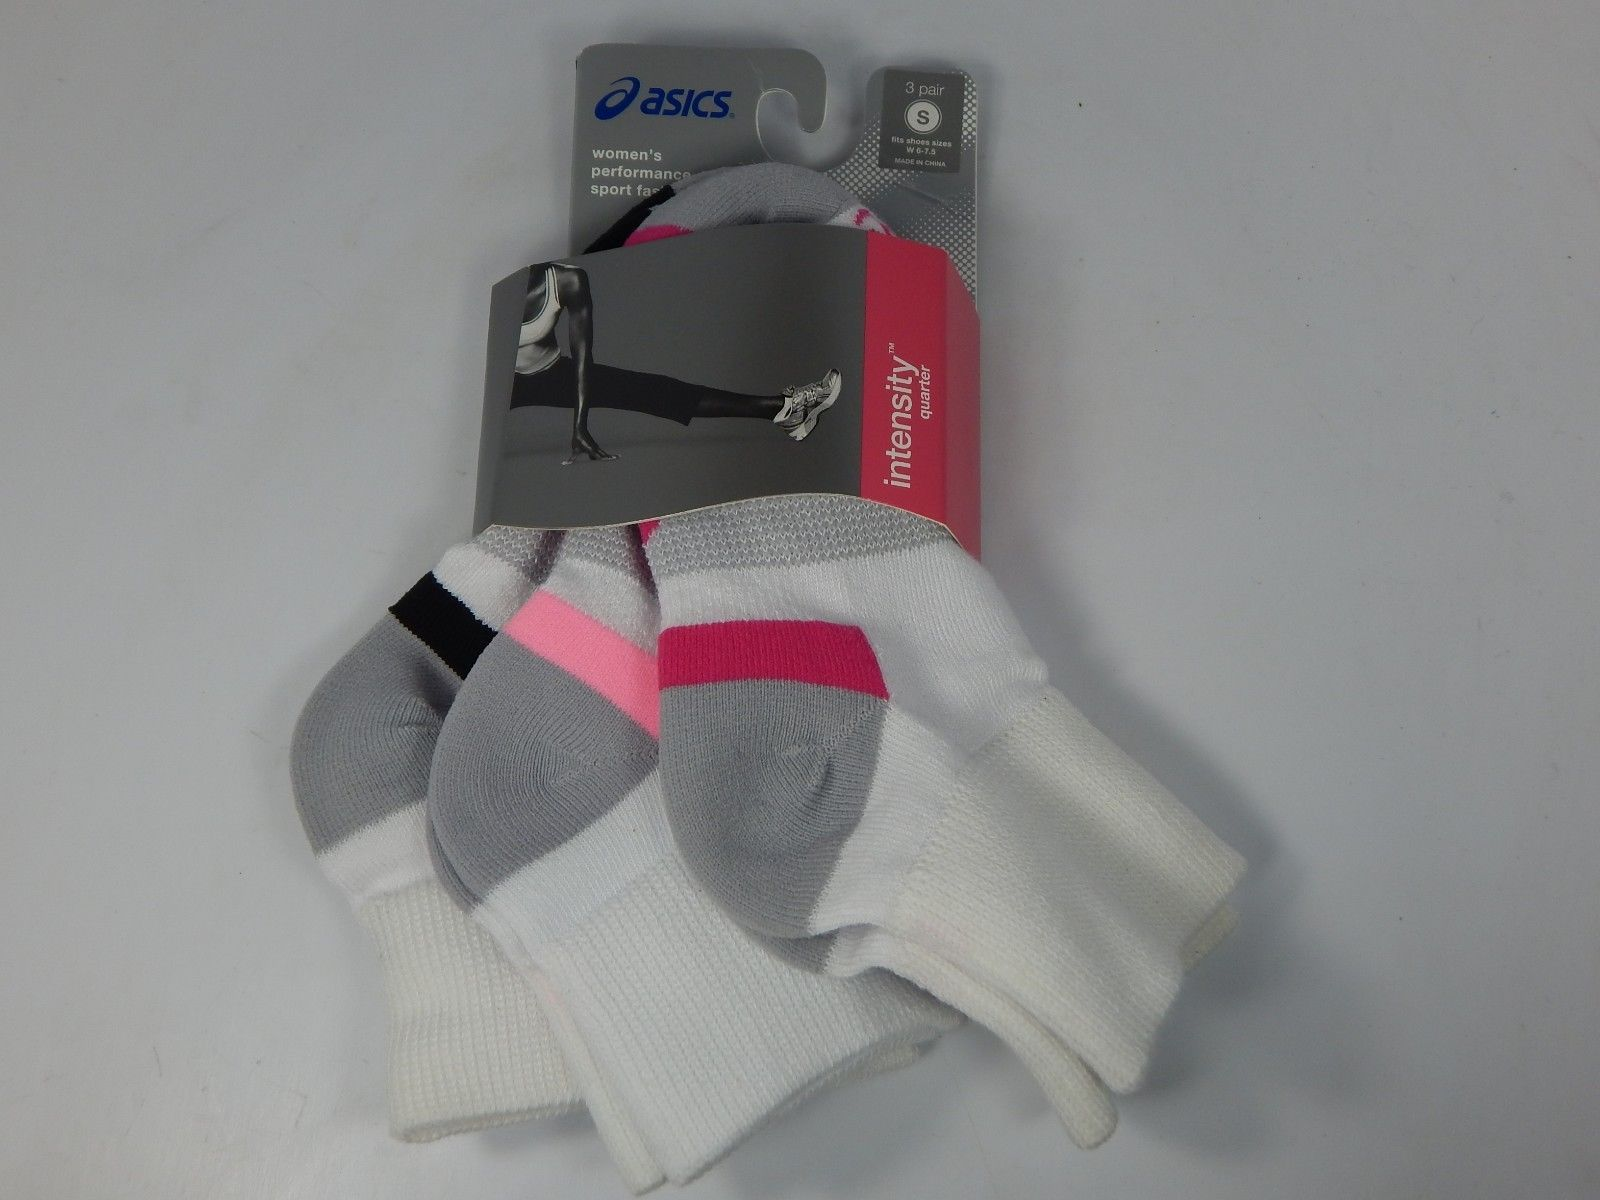 Asics Intensity Quarter 3 Pairs of White Socks S Small Women's Size 6-7.5